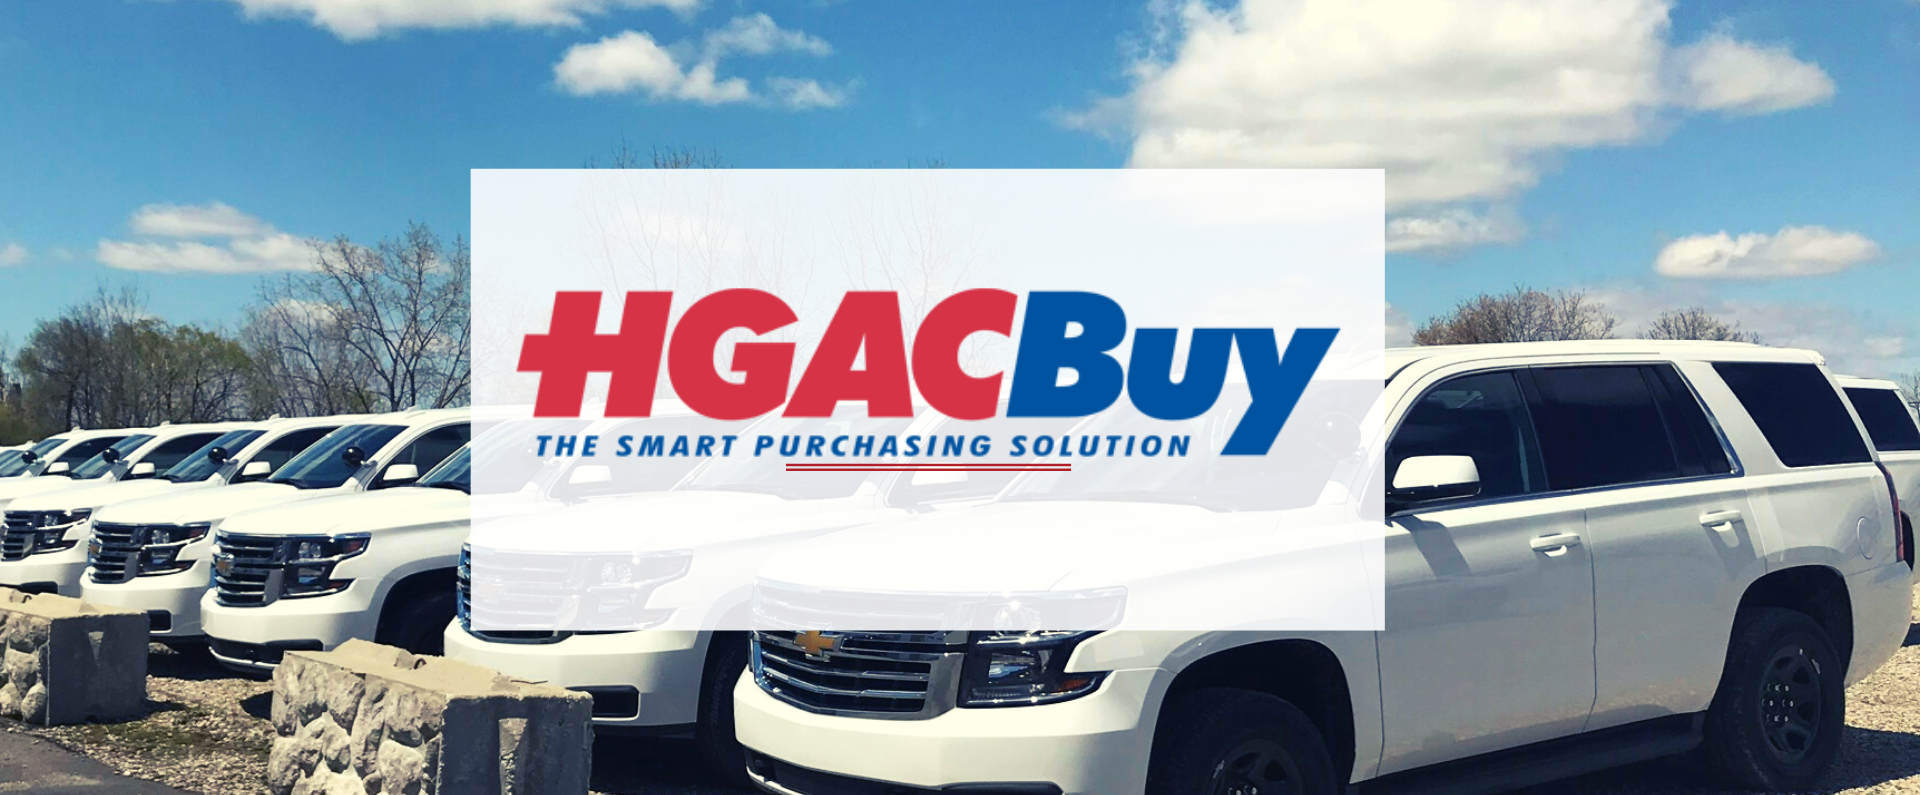 HGAC Buy - First Priority Emergency Vehicles